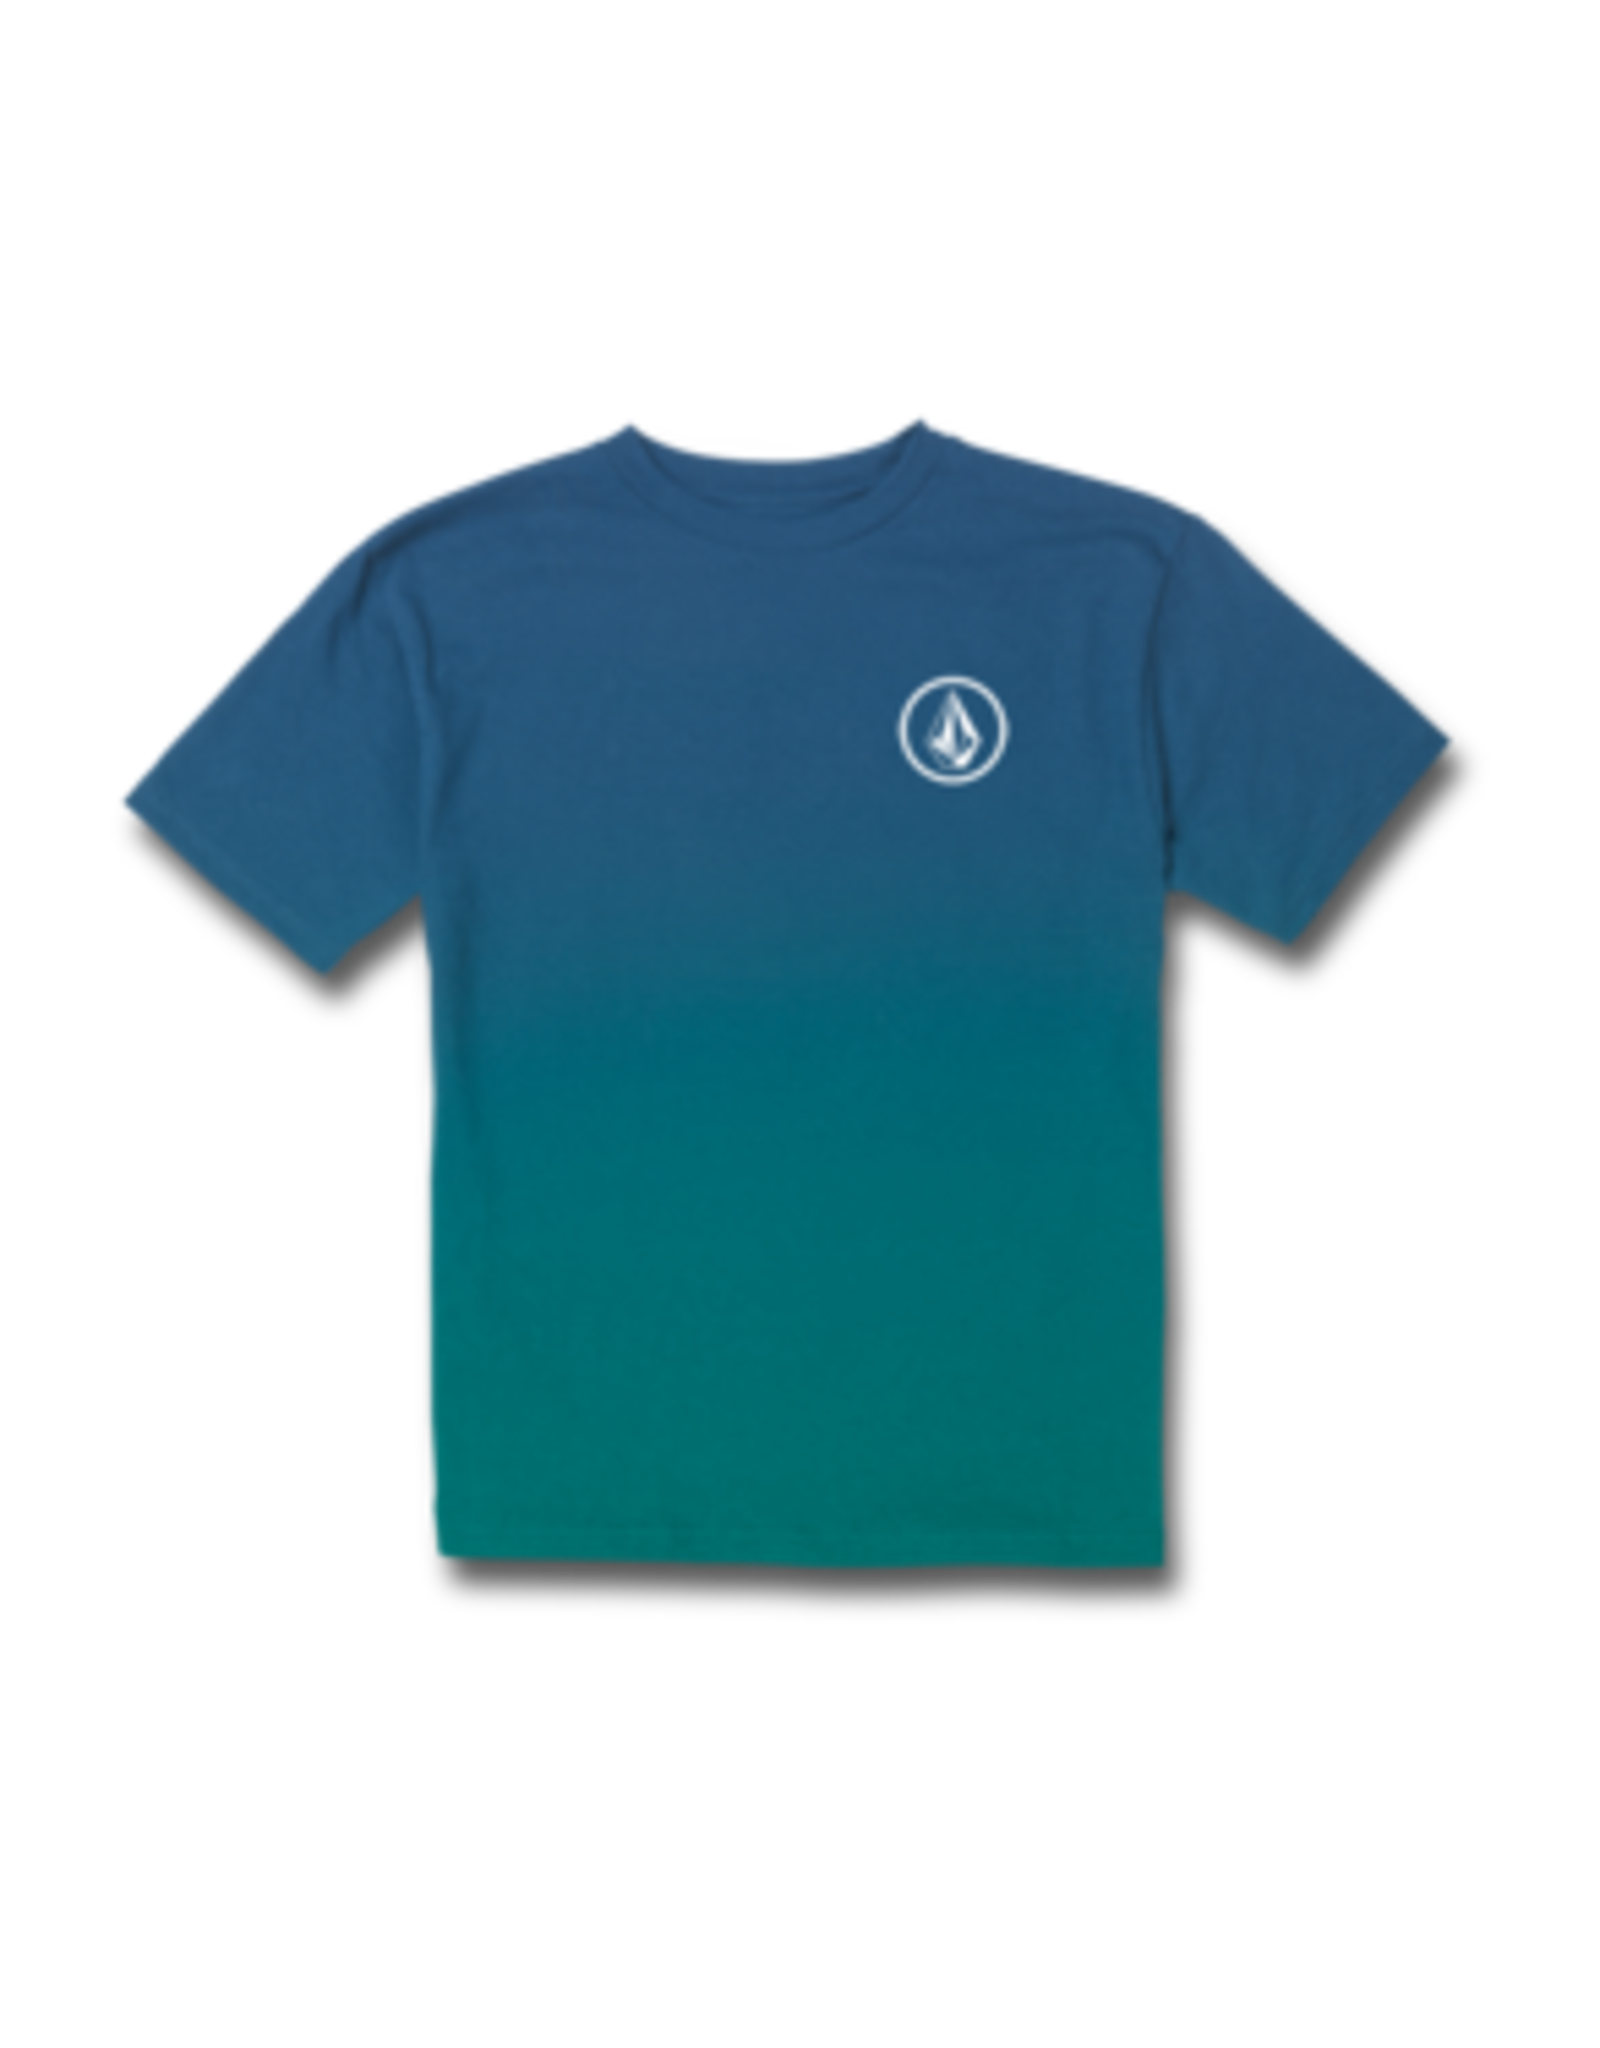 Volcom YOUTH PATCHER S/S TEE BALL POINT BLUE